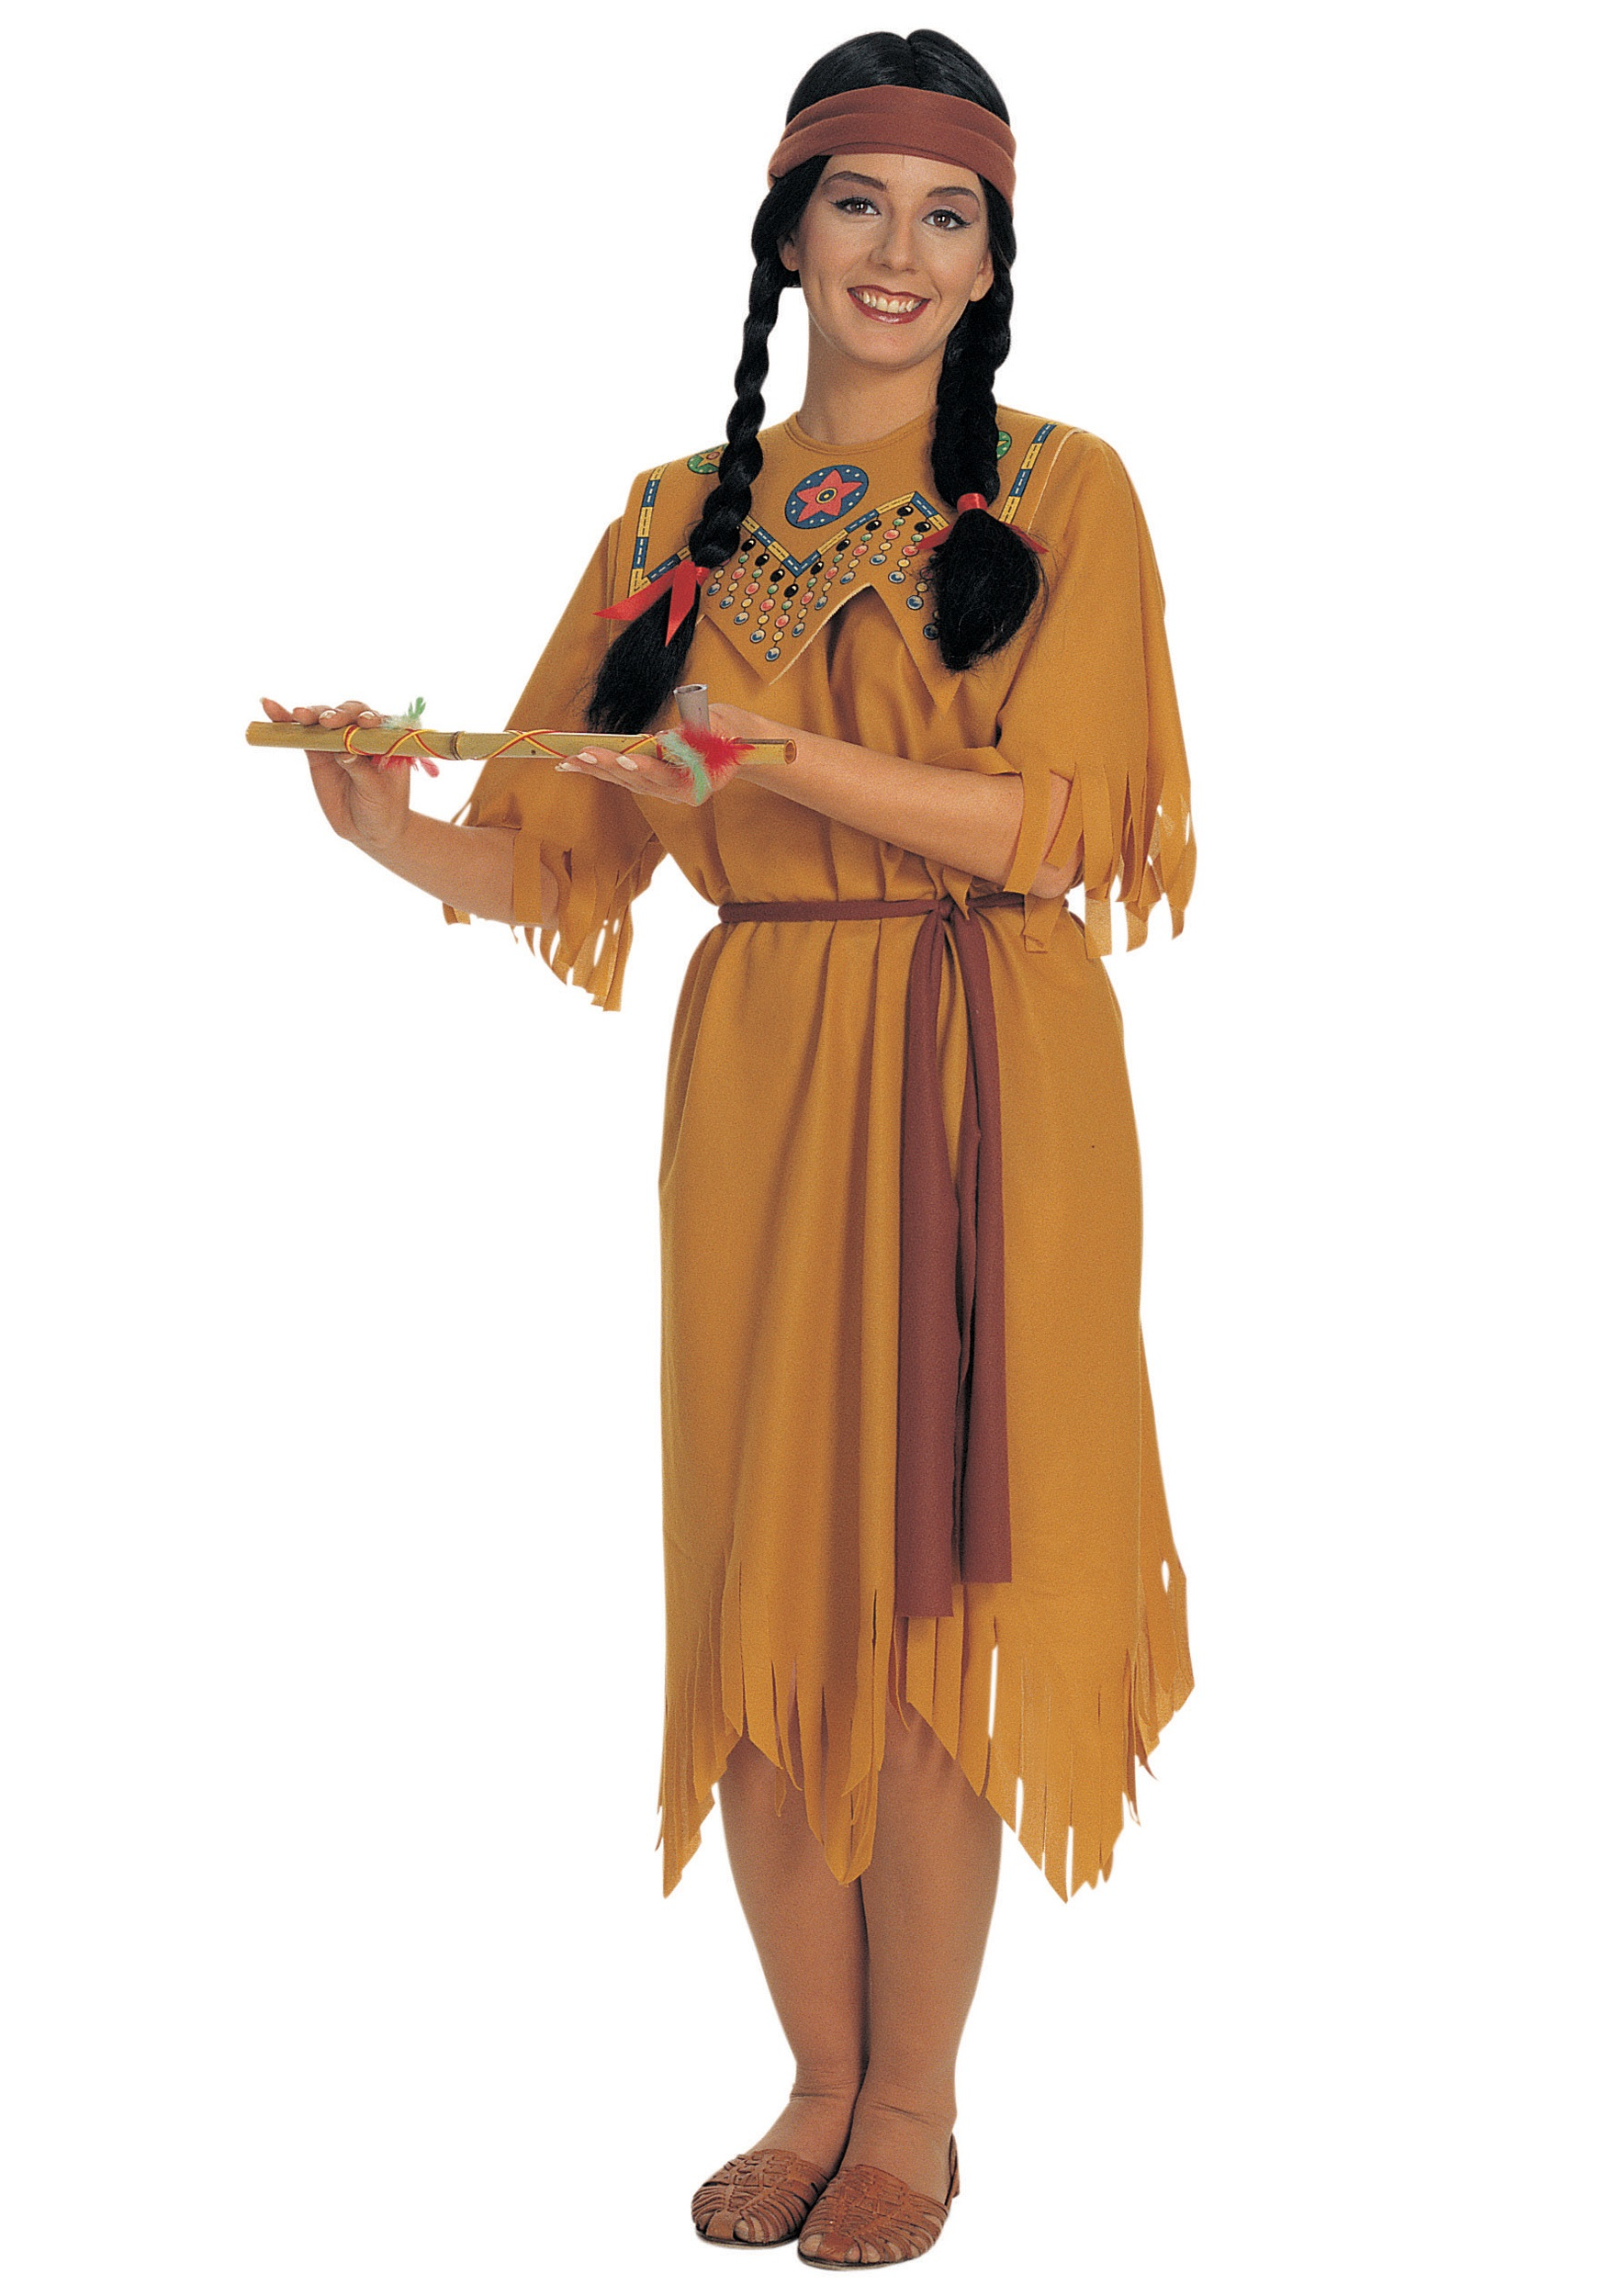 Remarkable phrase native american adult costume shall agree